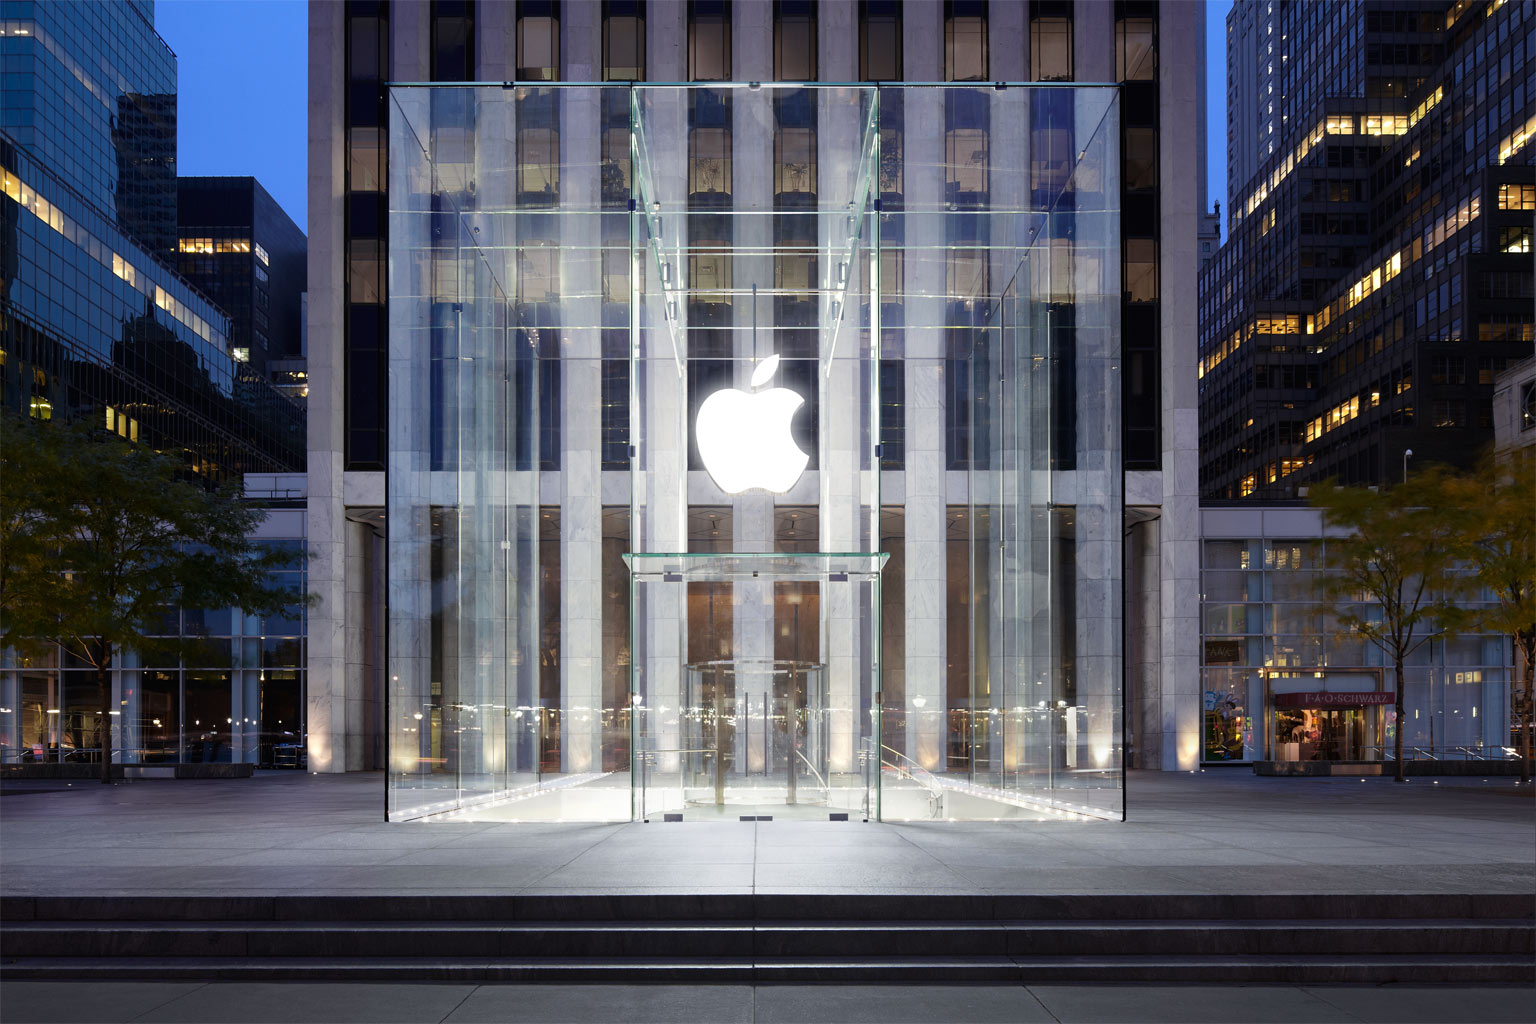 Apple Store Fifth Avenue in New York